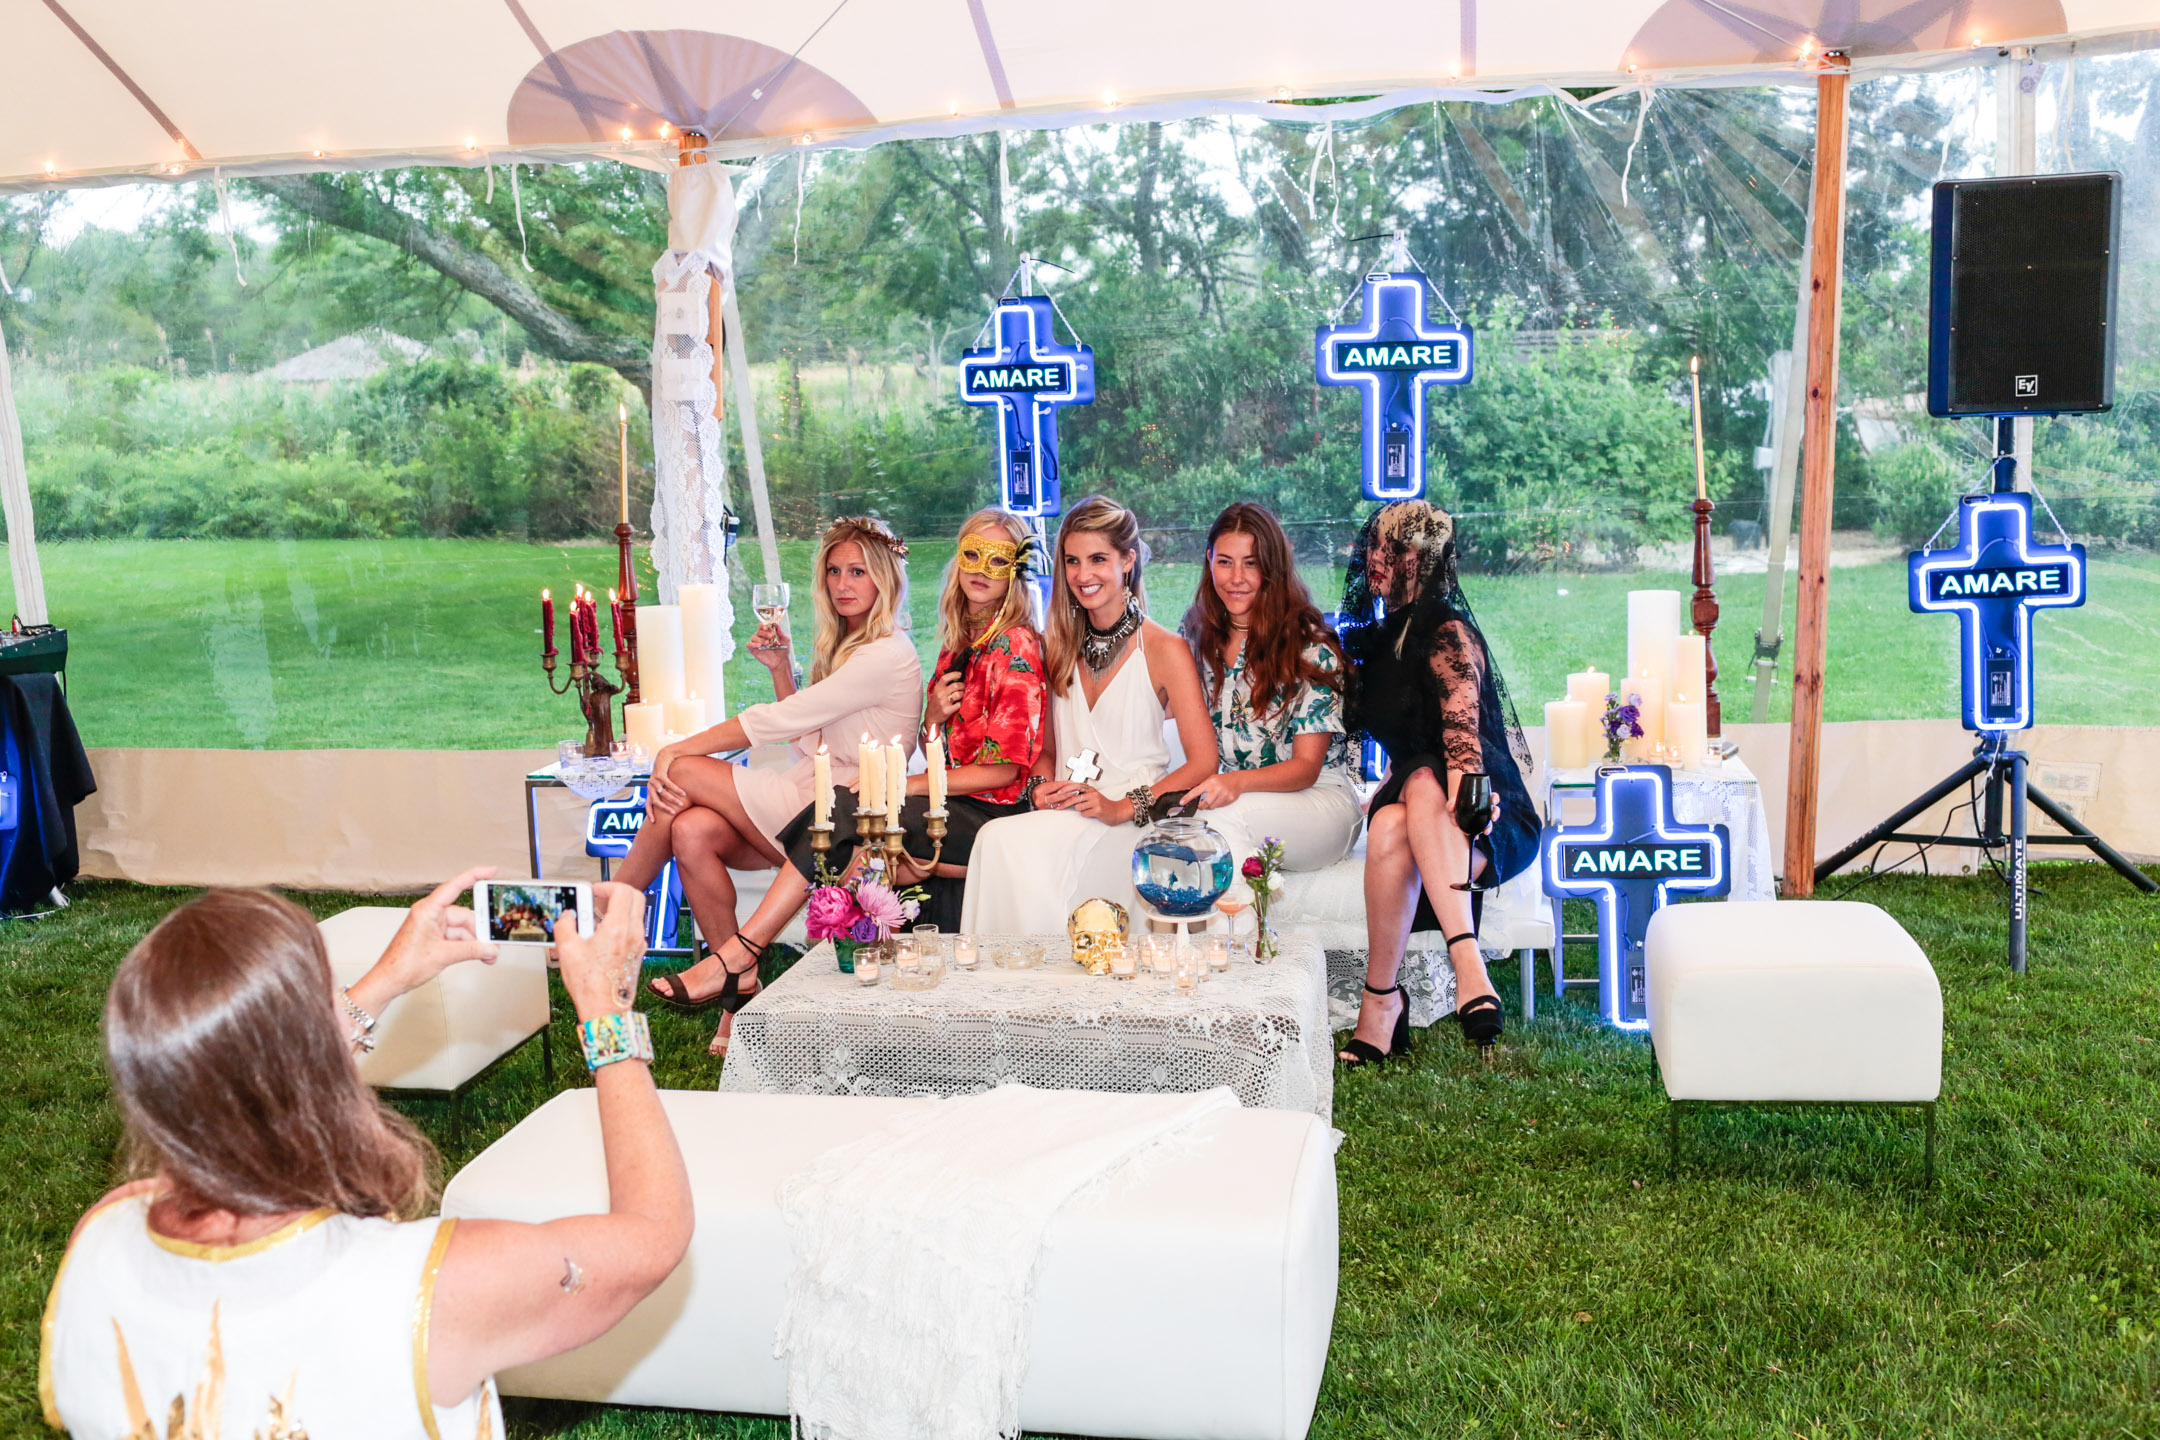 2eric_striffler_photography_event_party-6.jpg